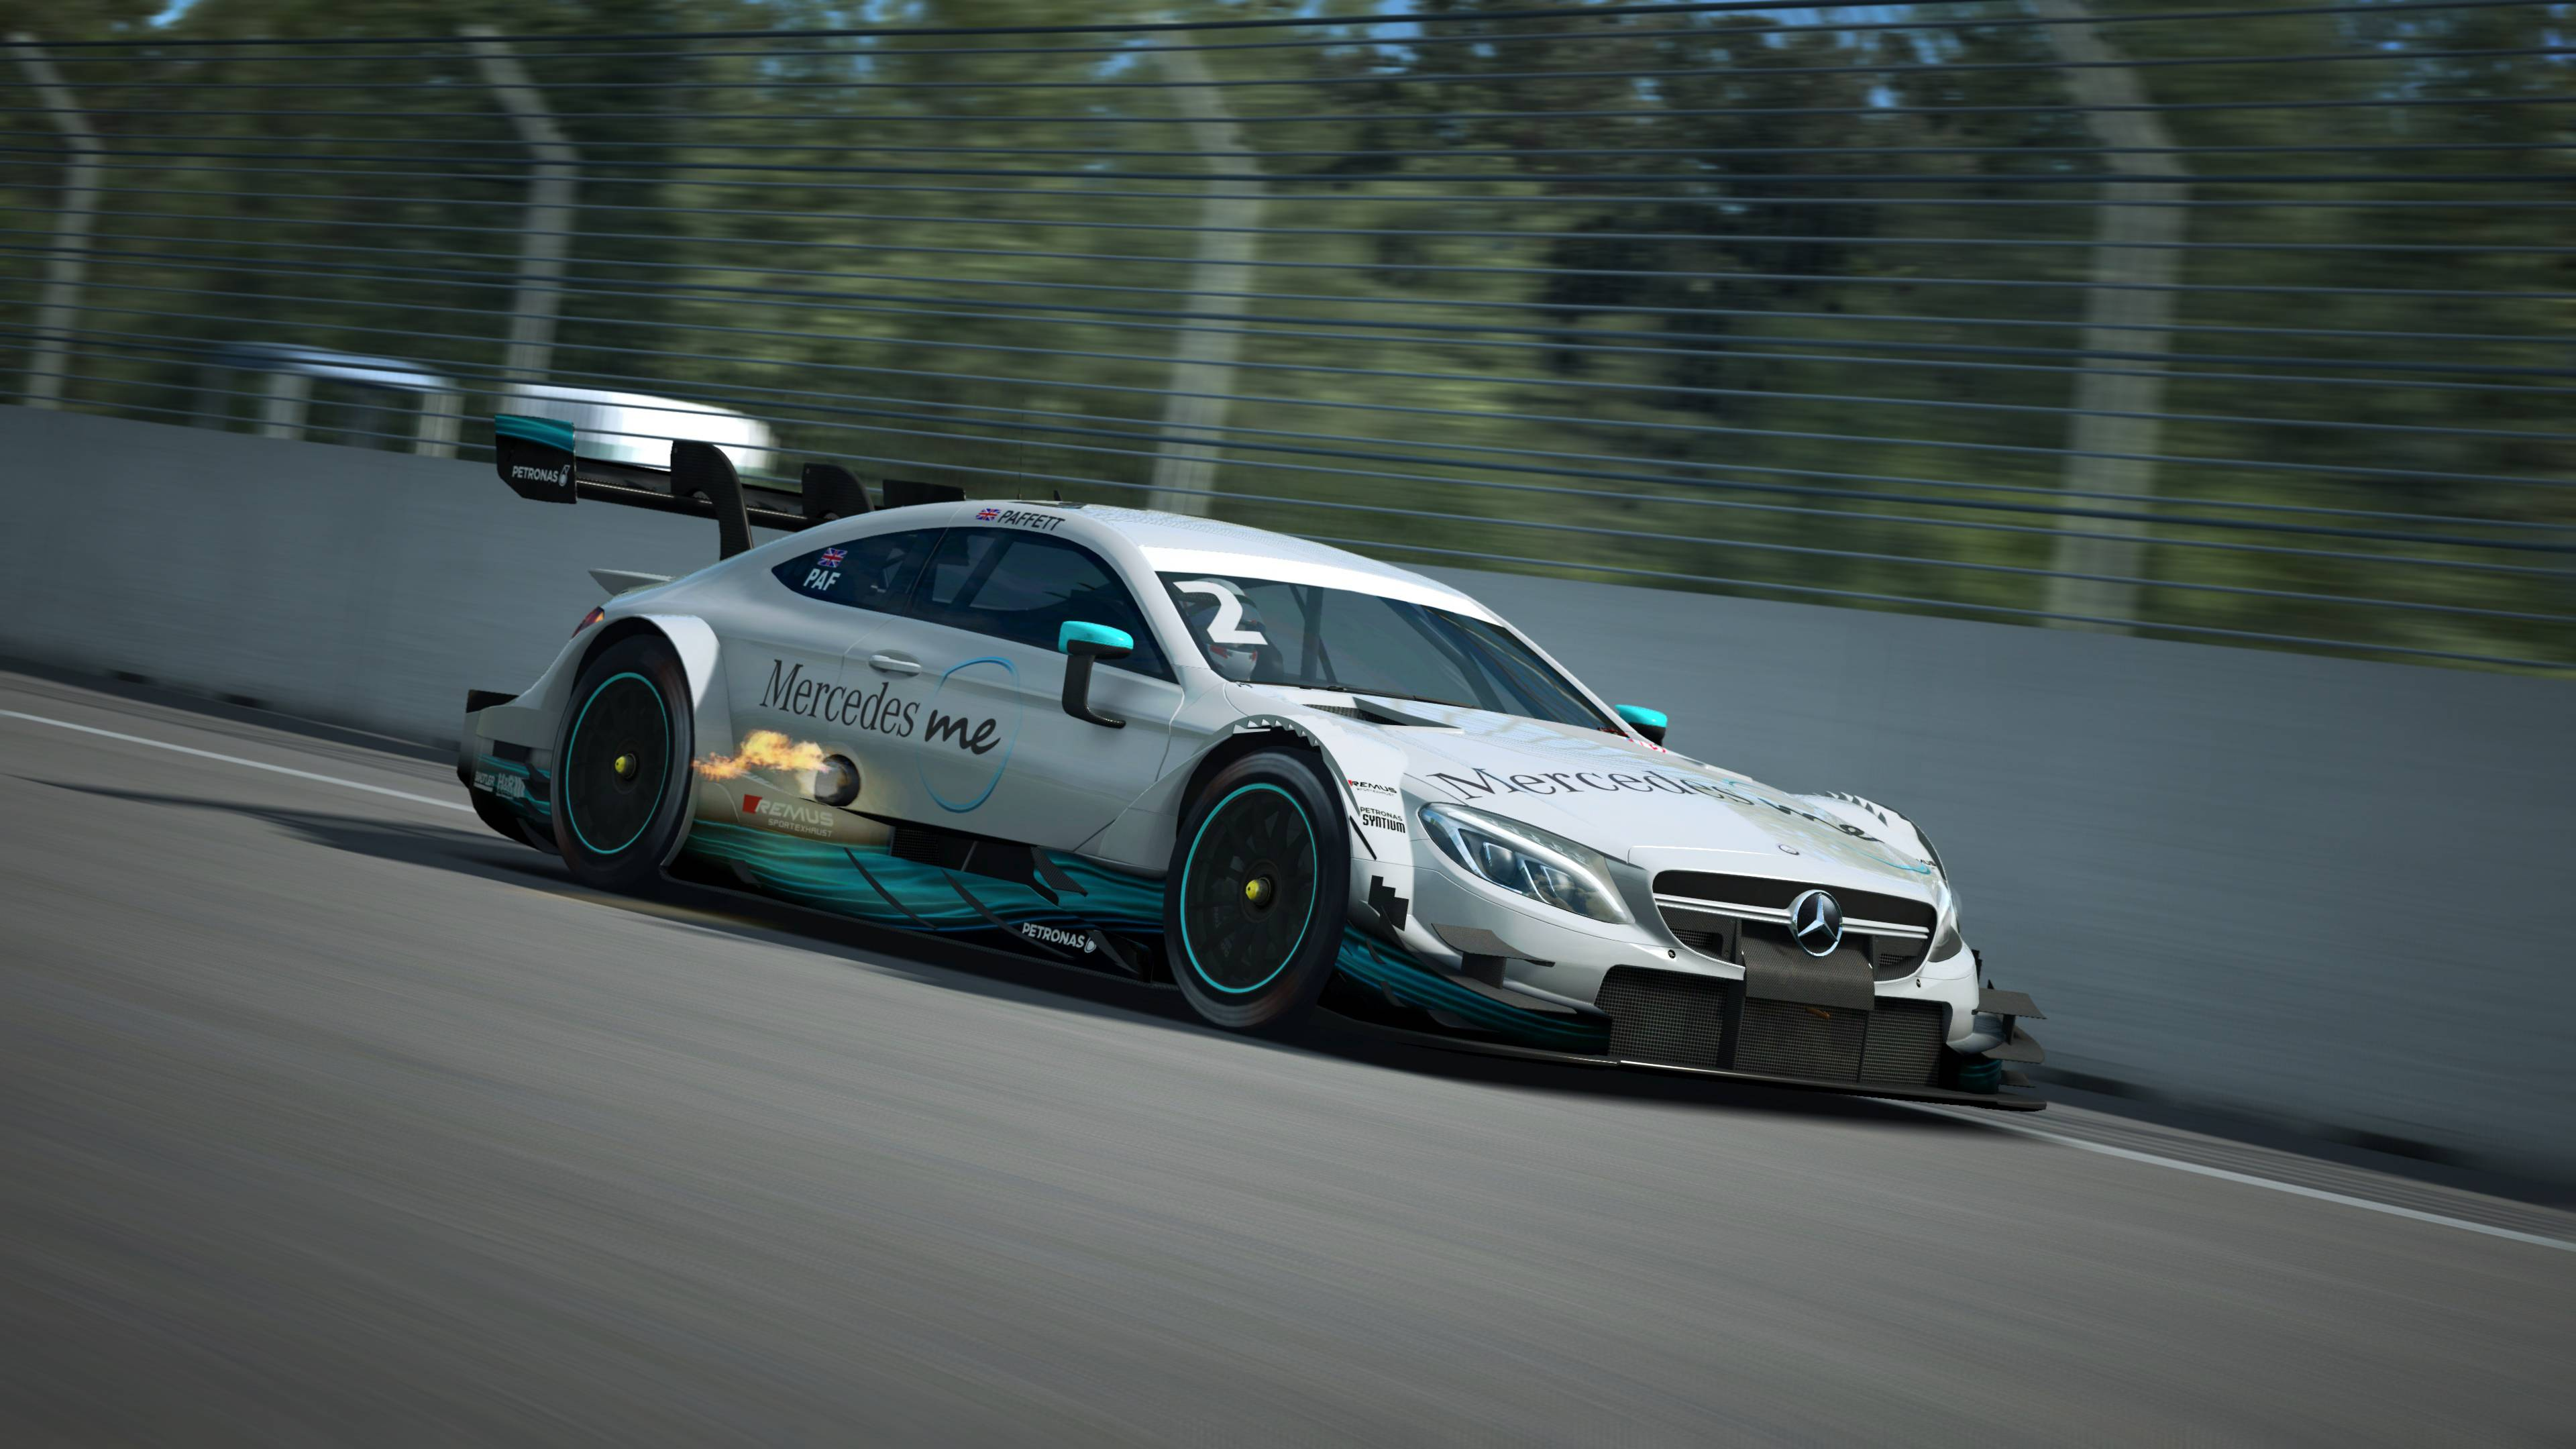 Raceroom Mercedes Amg Motorsport Eracing Competition